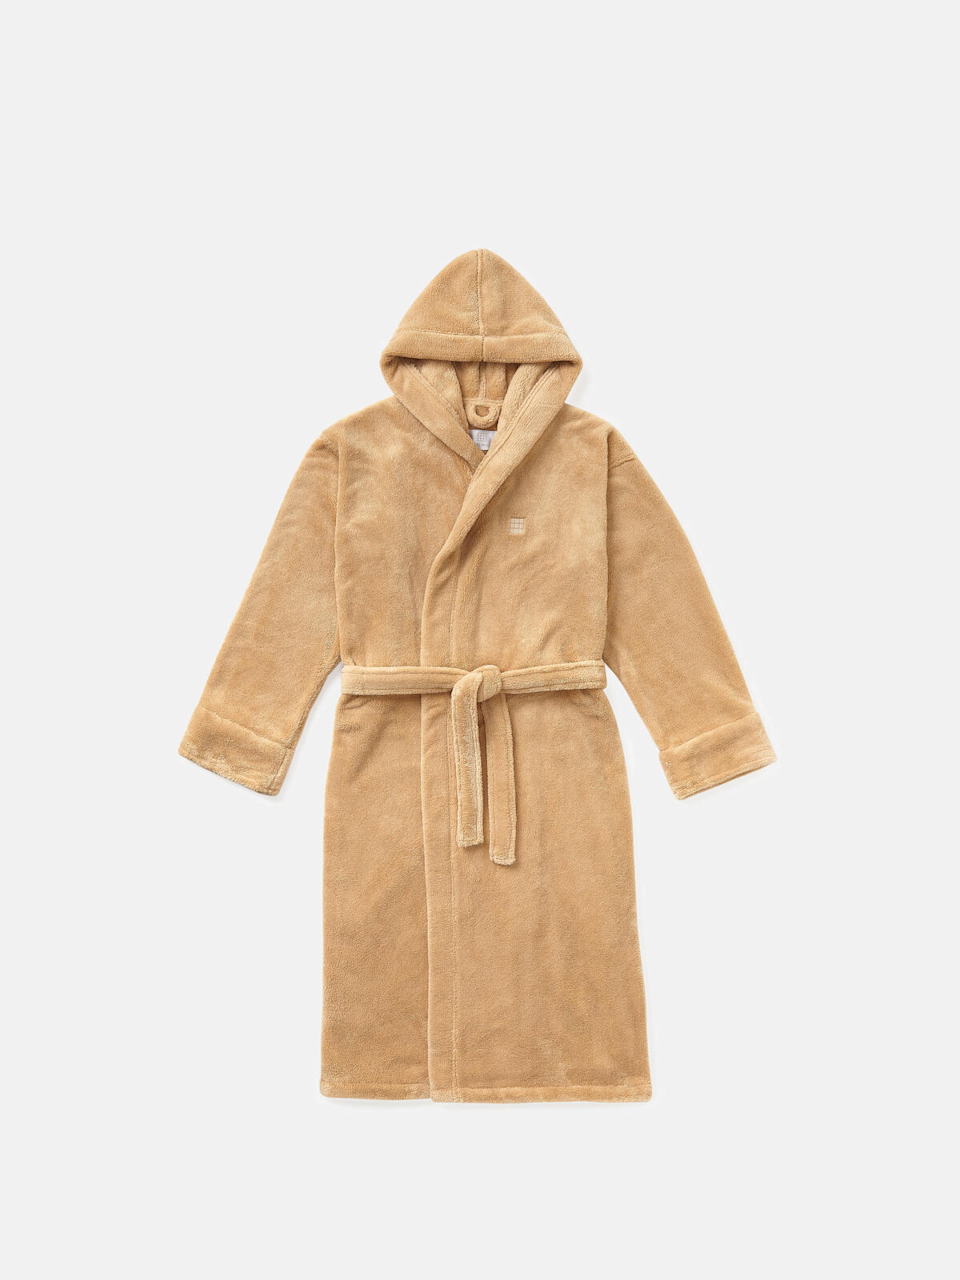 """<h2><a href=""""https://www.sohohome.com/us/products/house-robe/75140003"""" rel=""""nofollow noopener"""" target=""""_blank"""" data-ylk=""""slk:Frette House Robe"""" class=""""link rapid-noclick-resp"""">Frette House Robe</a></h2><br>This extra luxurious, super fluffy house robe is perfect if you're trying to feel like your lounging in a chic 5-star hotel. This robe includes a hood, attached belt and is made from 100% recycled fabric. <br><br><br><br><strong>Frette</strong> House Robe, $, available at <a href=""""https://go.skimresources.com/?id=30283X879131&url=https%3A%2F%2Fwww.sohohome.com%2Fus%2Fproducts%2Fhouse-robe%2F75140003"""" rel=""""nofollow noopener"""" target=""""_blank"""" data-ylk=""""slk:Soho Home"""" class=""""link rapid-noclick-resp"""">Soho Home</a>"""